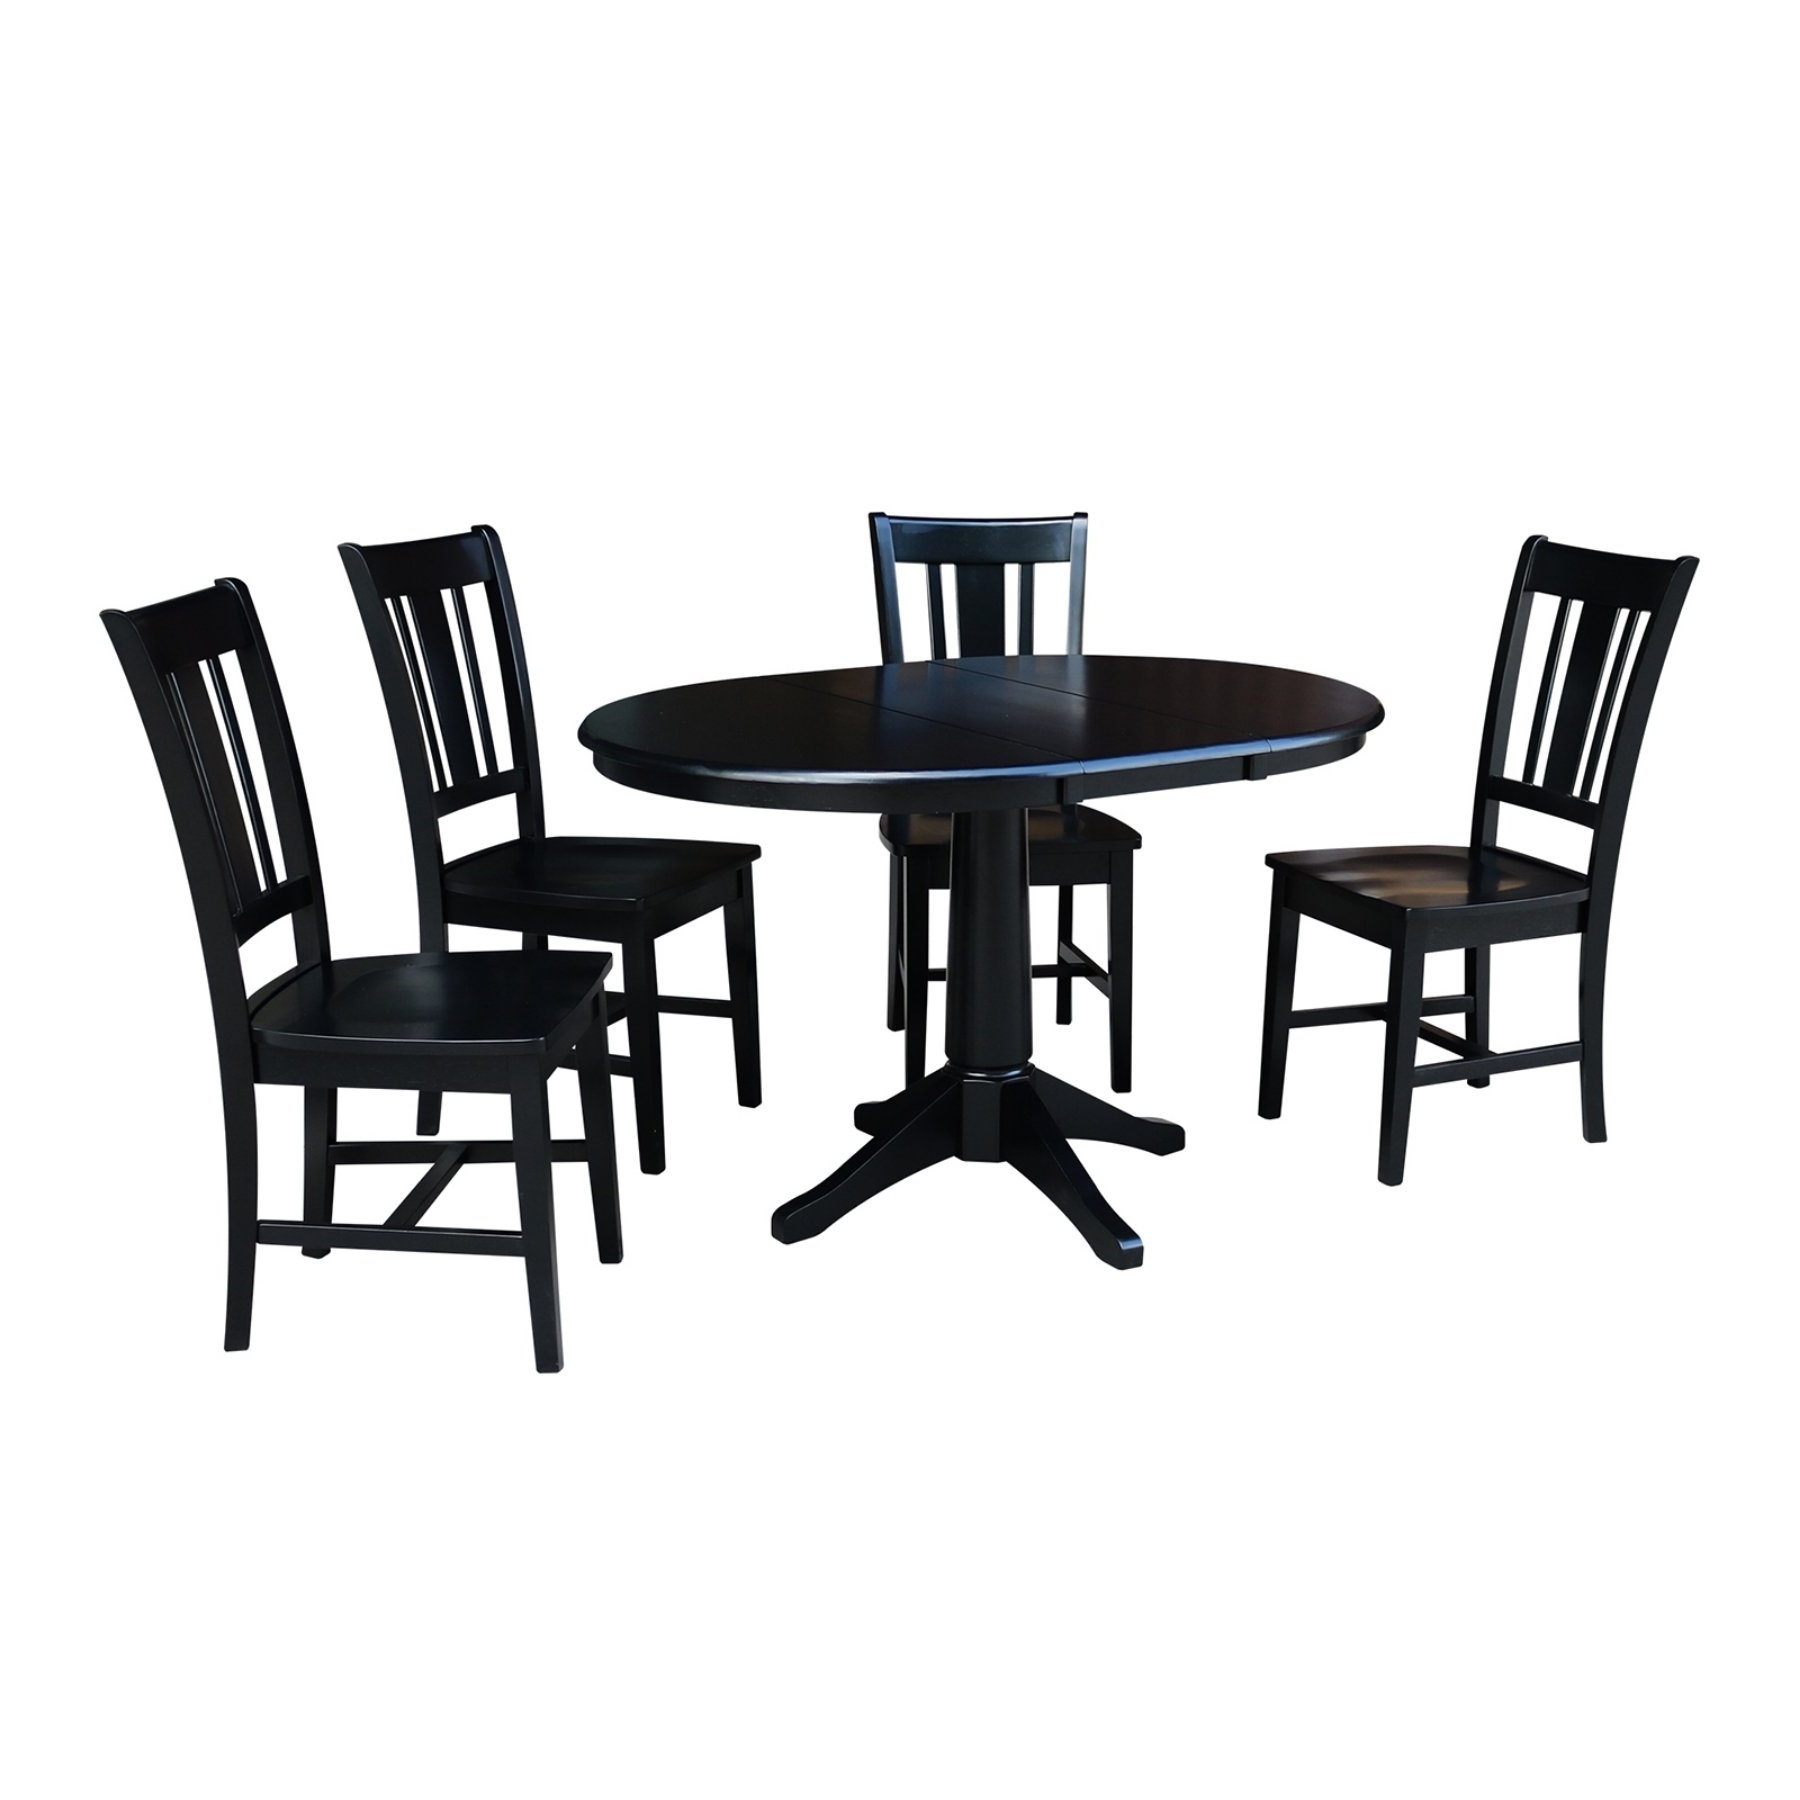 Well Liked Craftsman 5 Piece Round Dining Sets With Side Chairs Intended For International Concepts 5 Piece Dining Table Set With Extension Leaf (View 22 of 25)